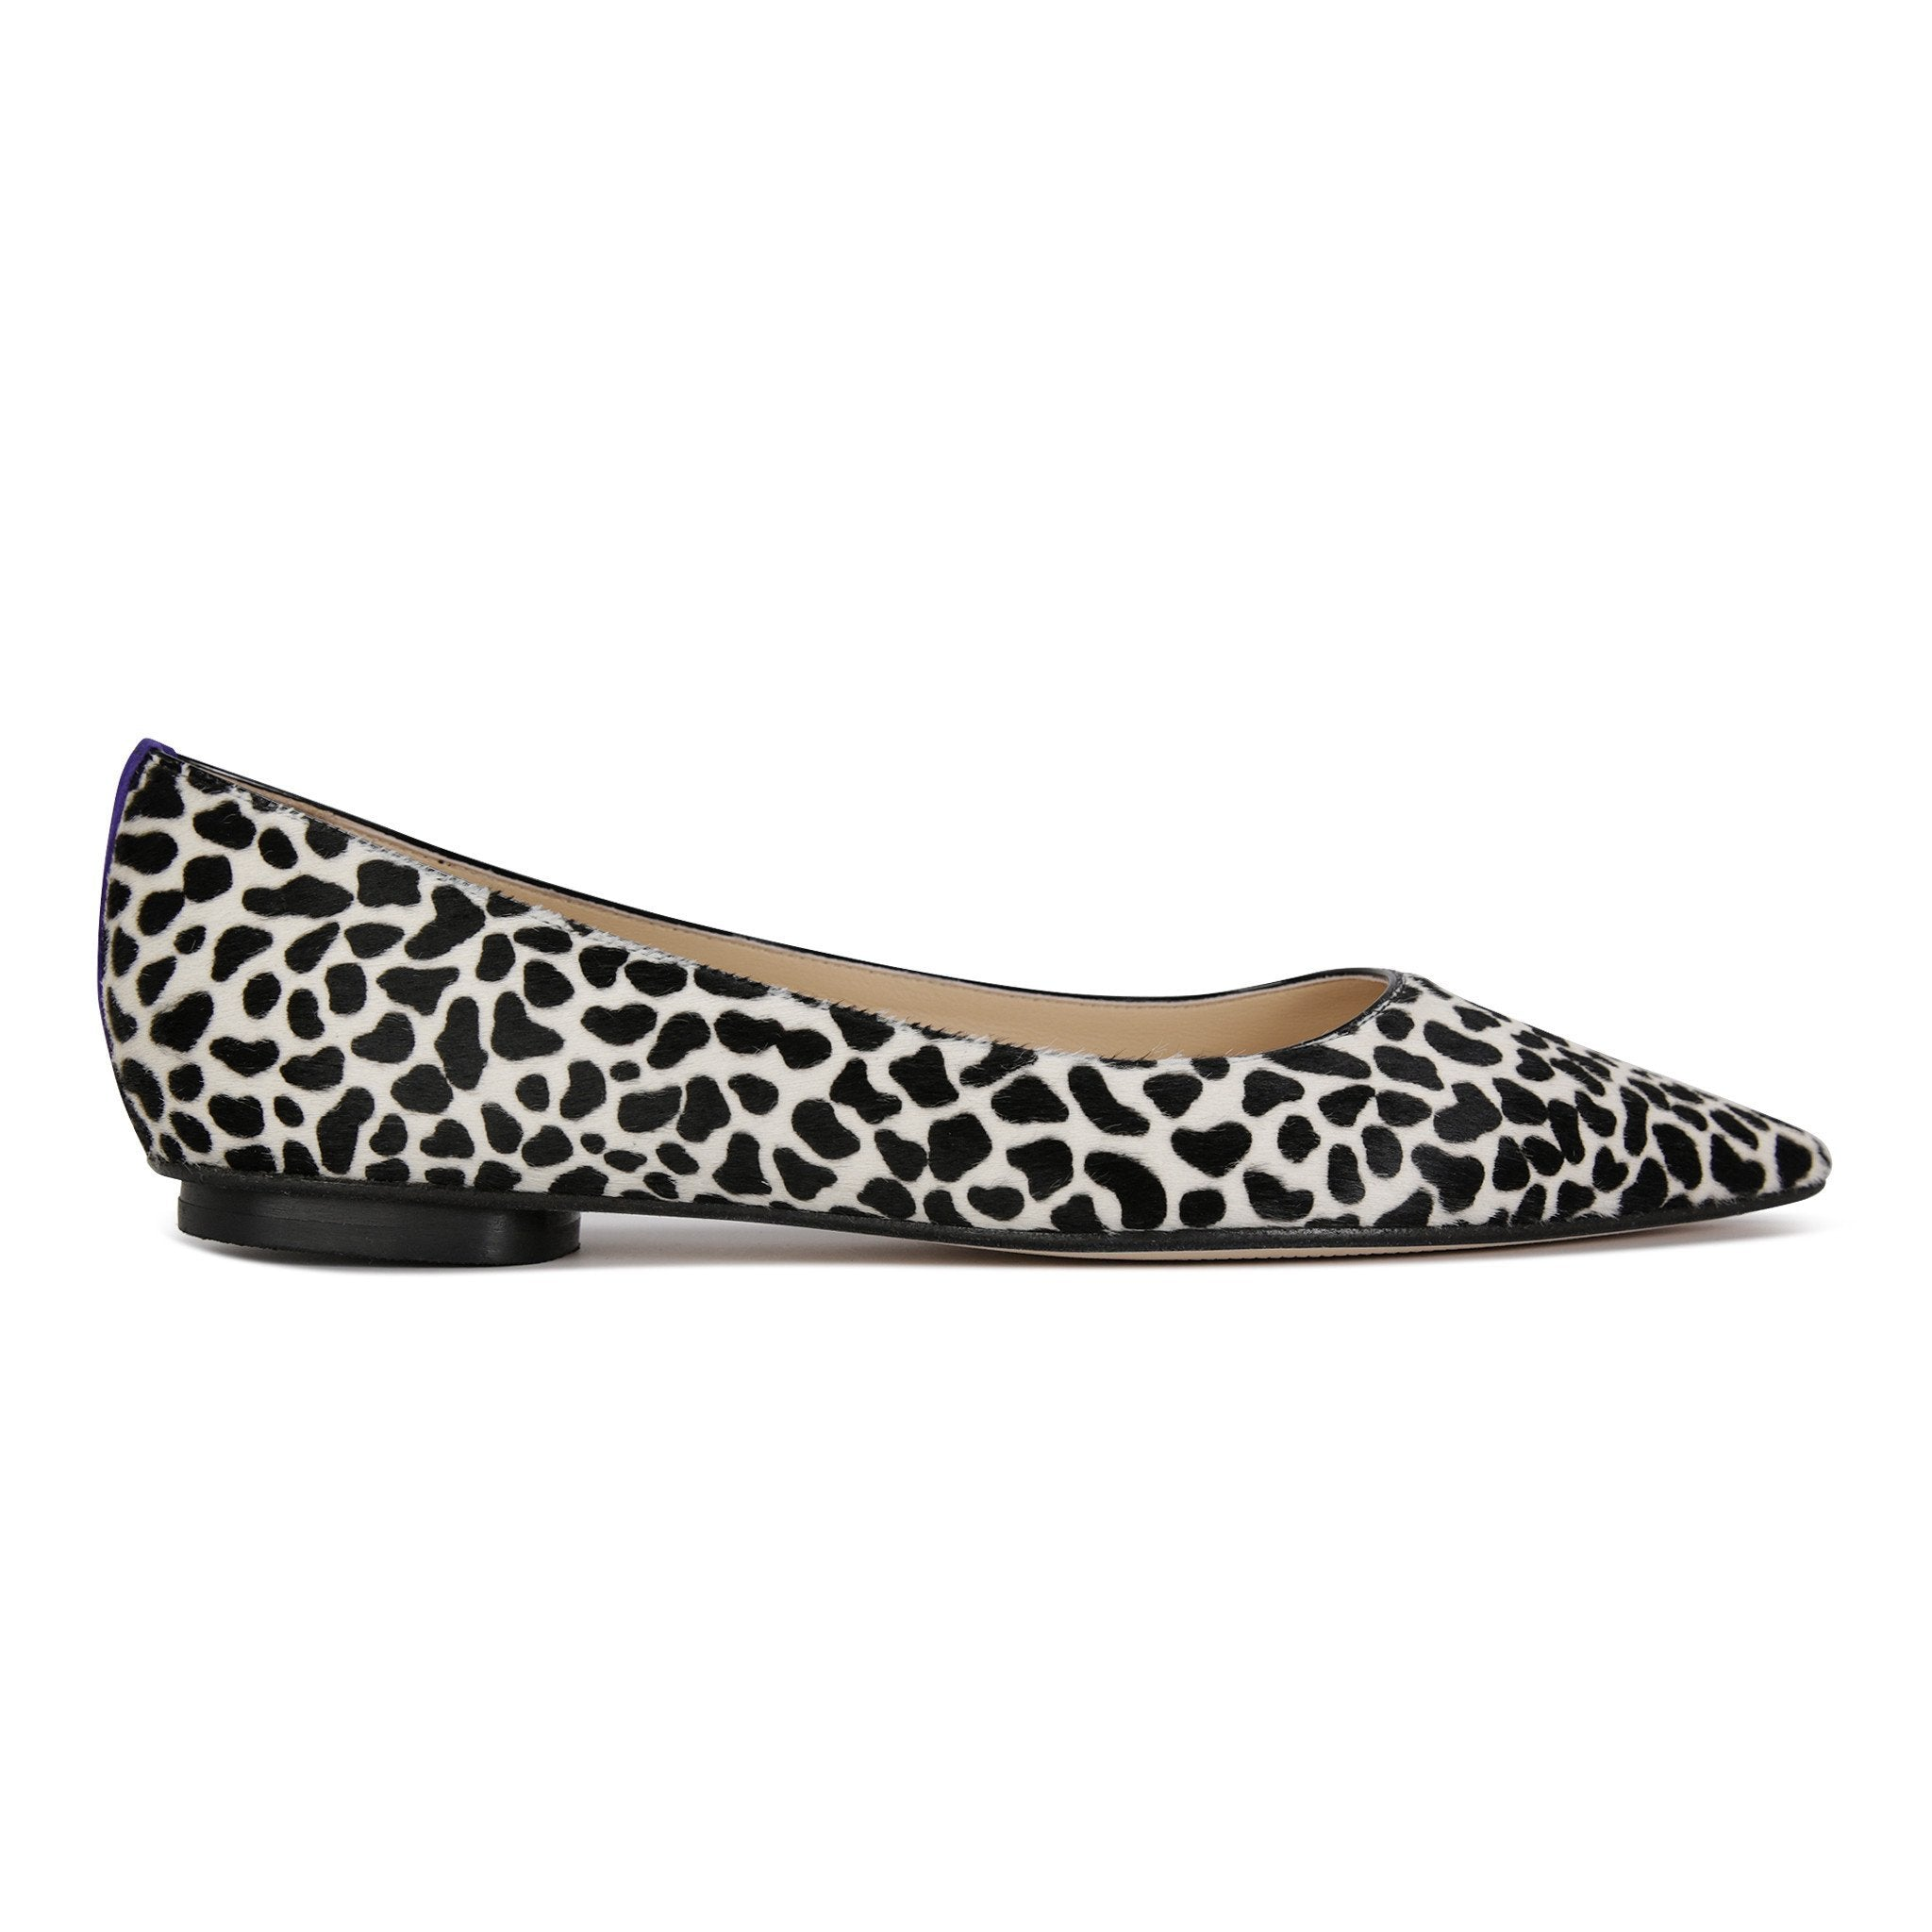 COMO - Calf Hair Dalmation + Velukid Blueberry, VIAJIYU - Women's Hand Made Sustainable Luxury Shoes. Made in Italy. Made to Order.